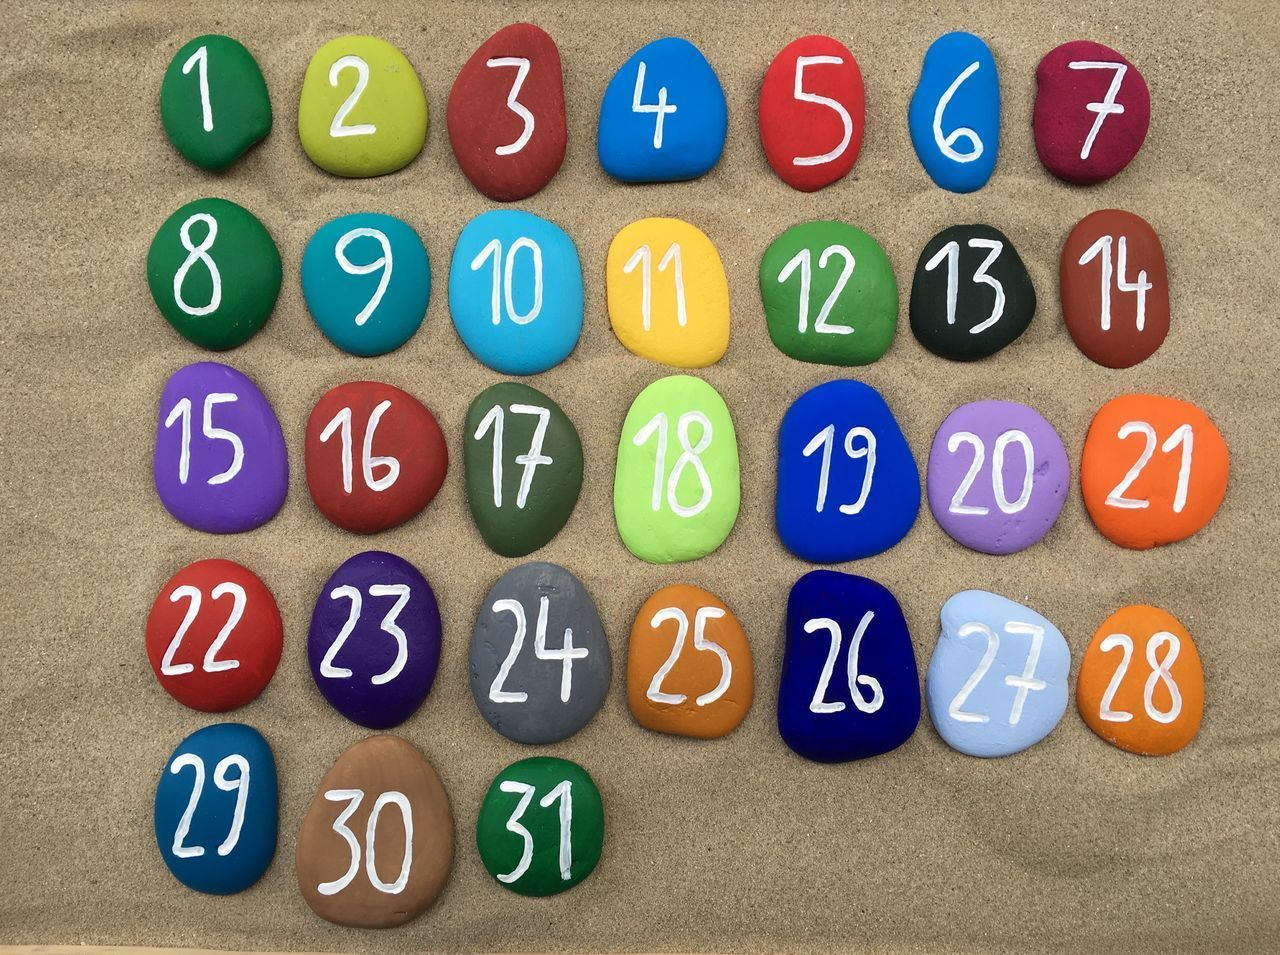 1 to 31 Month Month Days Numbers Set Background Sand Concept ArtWork Craftwork Colors Stones Stone Art Pebbles Yournameonstones Weeks